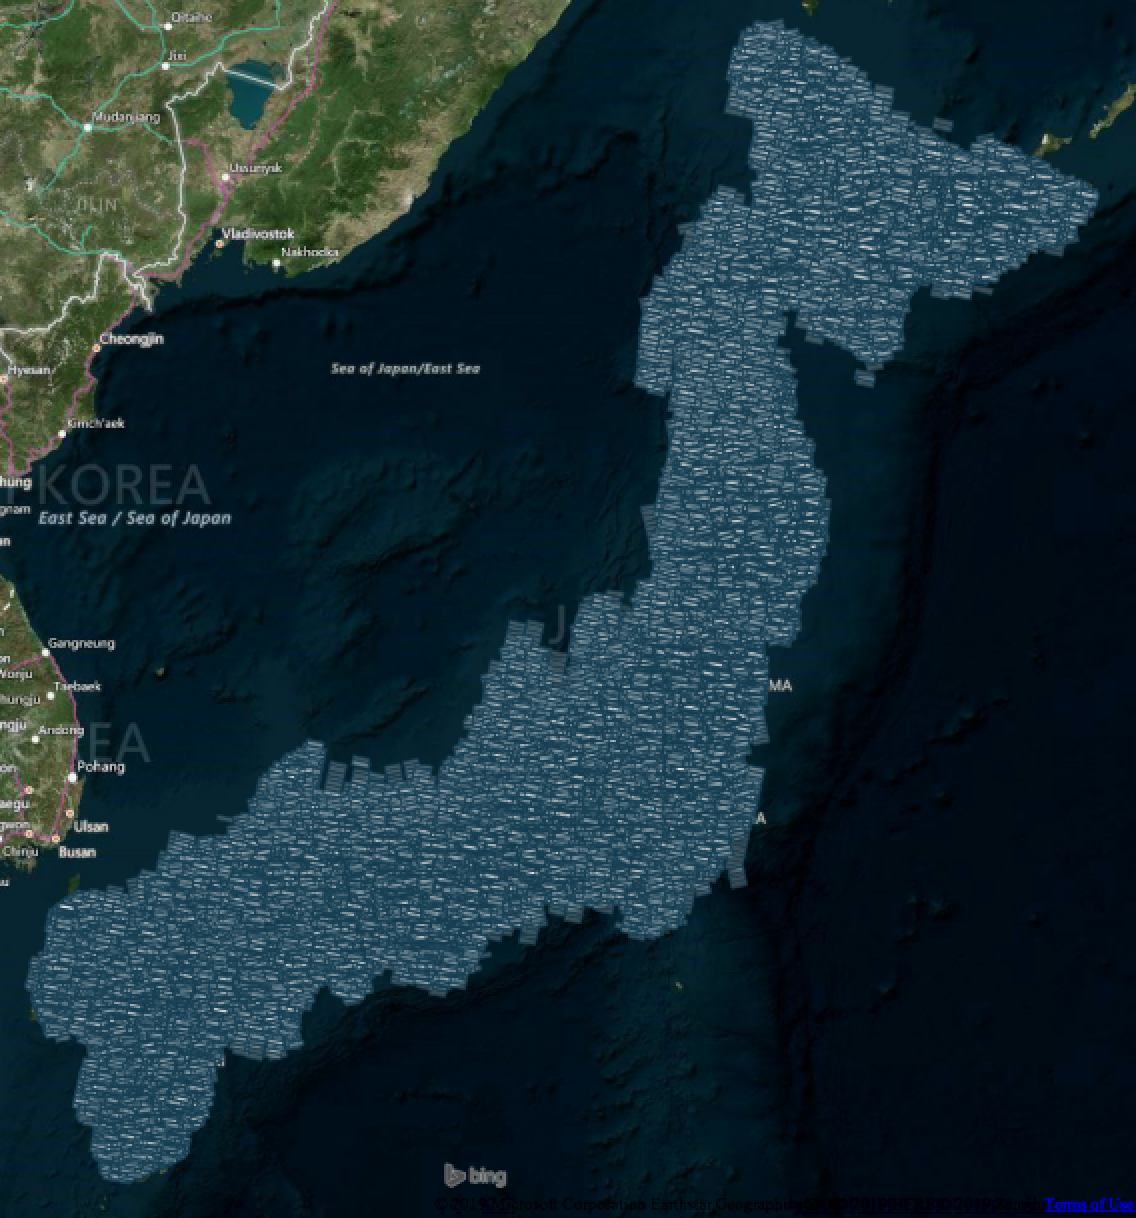 Medium resolution satellite imagery coverage of Japan